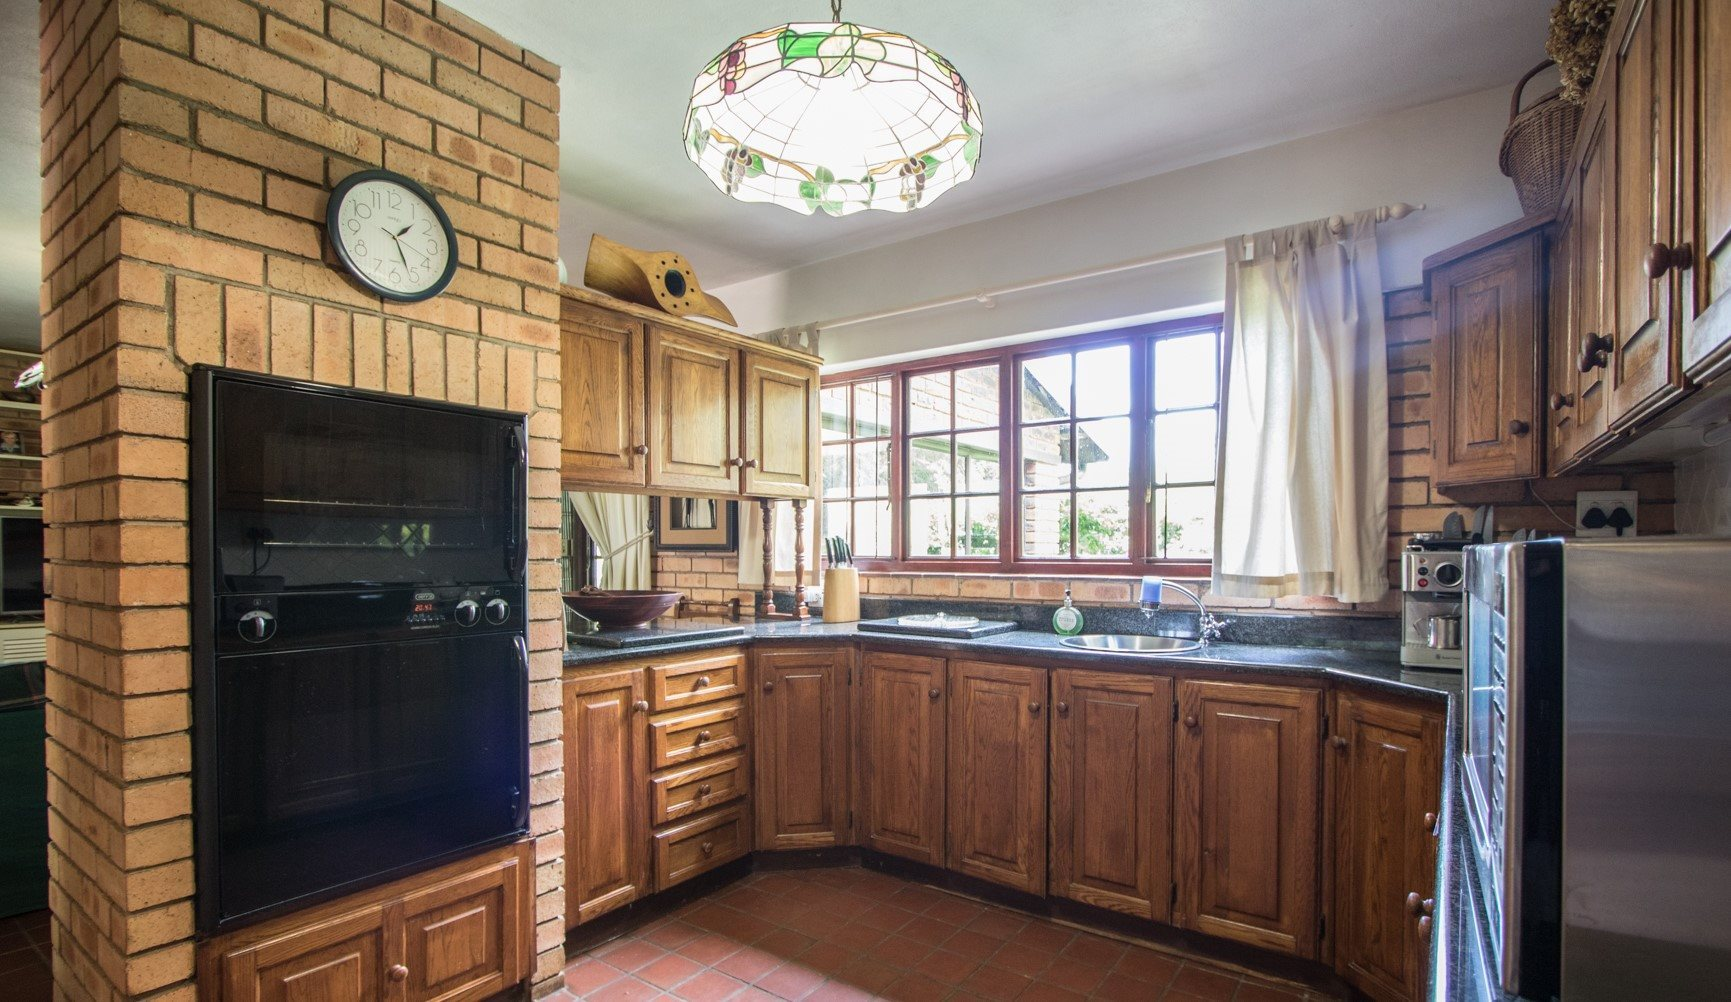 Summerveld property for sale. Ref No: 13247765. Picture no 7